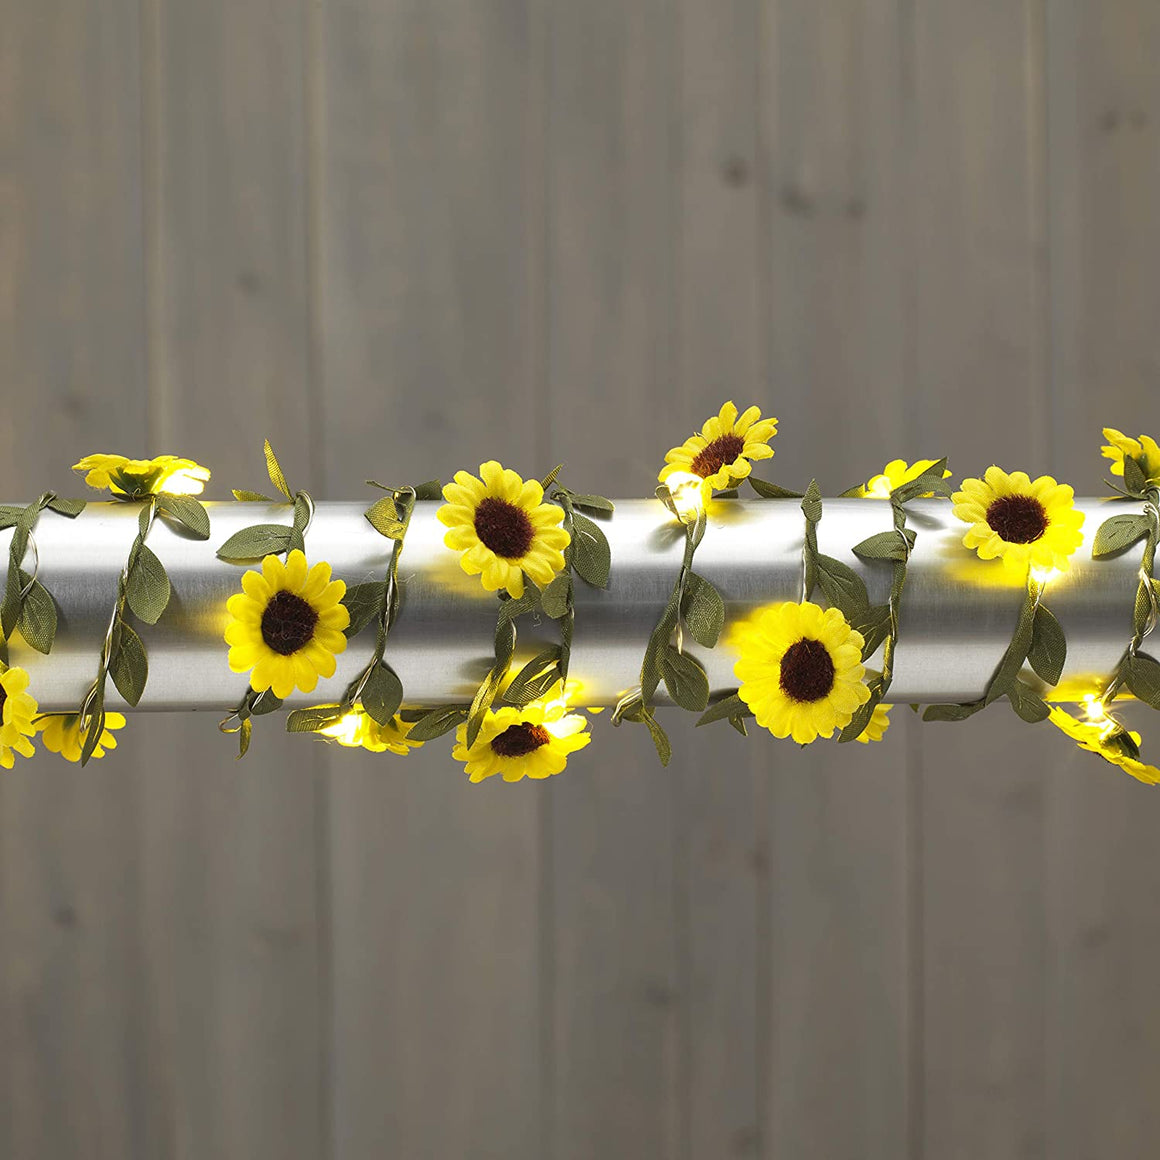 6 Foot Lighted Yellow Sunflower Garland, Everlasting Glow LED Battery Operated Warm White Lights